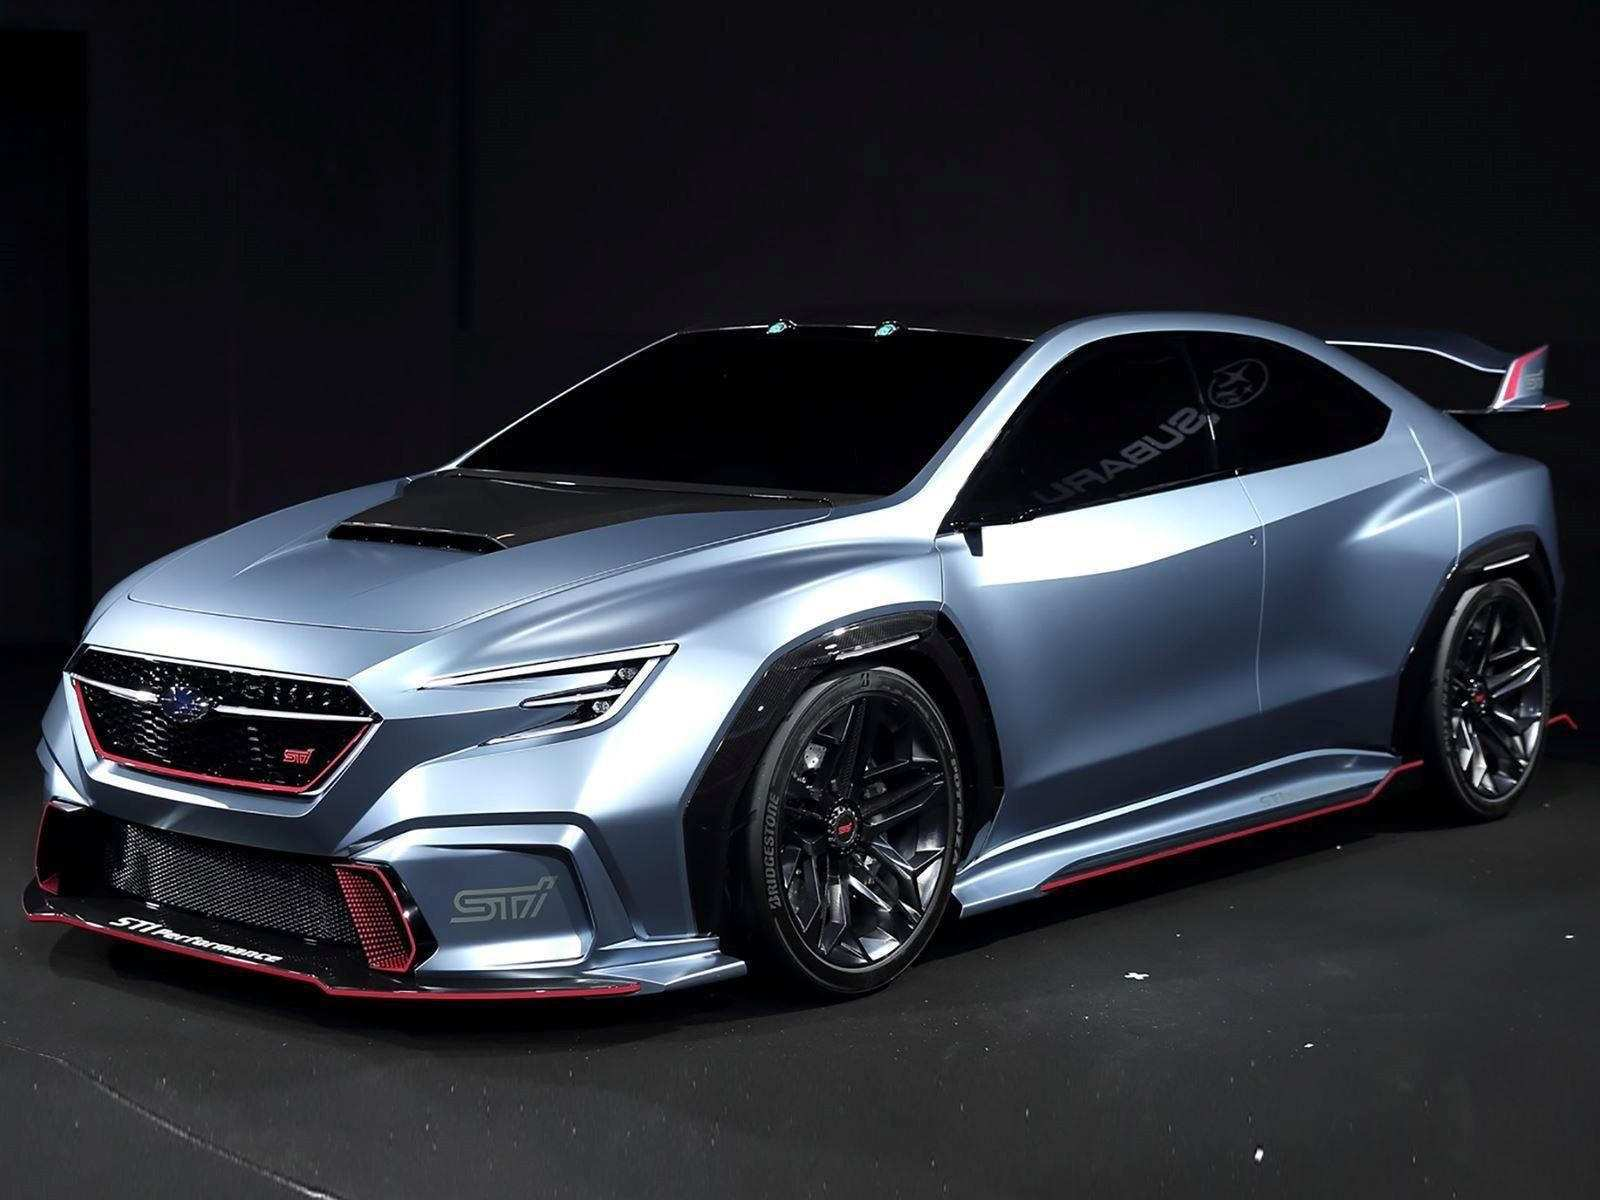 22 Concept of Subaru 2020 Plan Spesification for Subaru 2020 Plan